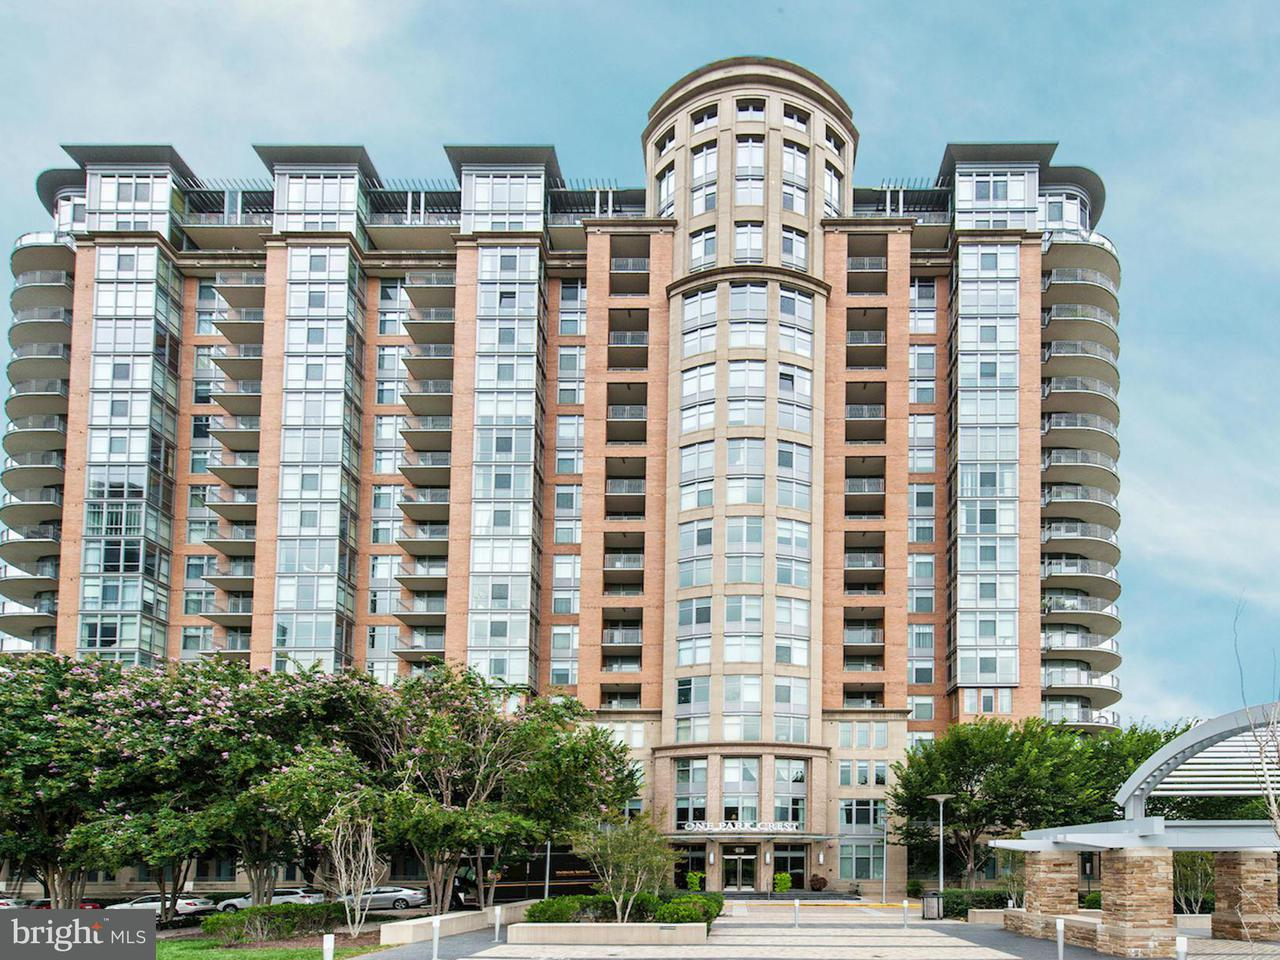 Condominium for Sale at 8220 CRESTWOOD HEIGHTS DR #1617 8220 CRESTWOOD HEIGHTS DR #1617 McLean, Virginia 22102 United States